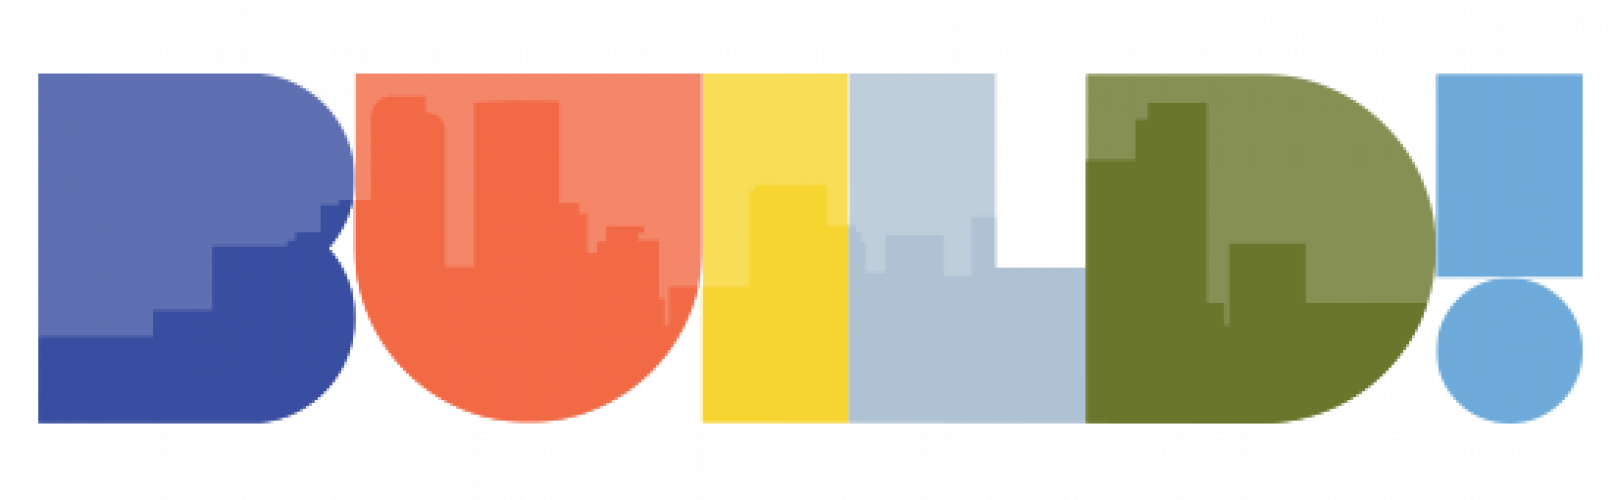 Build!Logo_LXeY.png